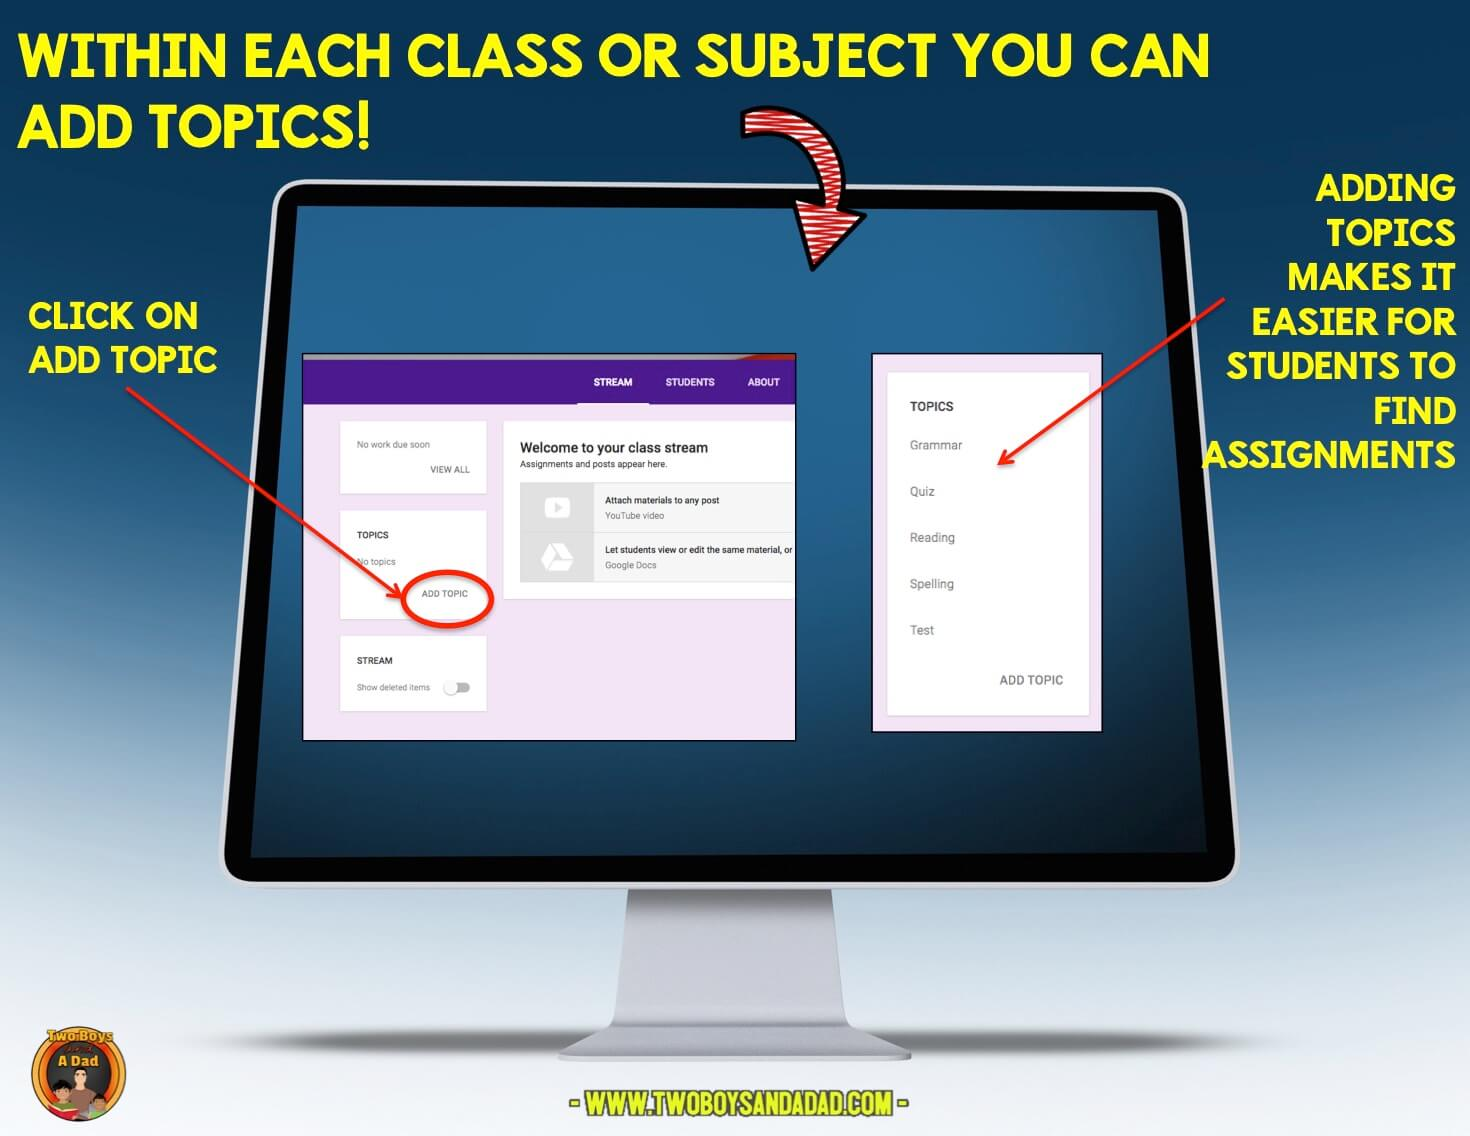 Add topics within each subject in Google Classroom